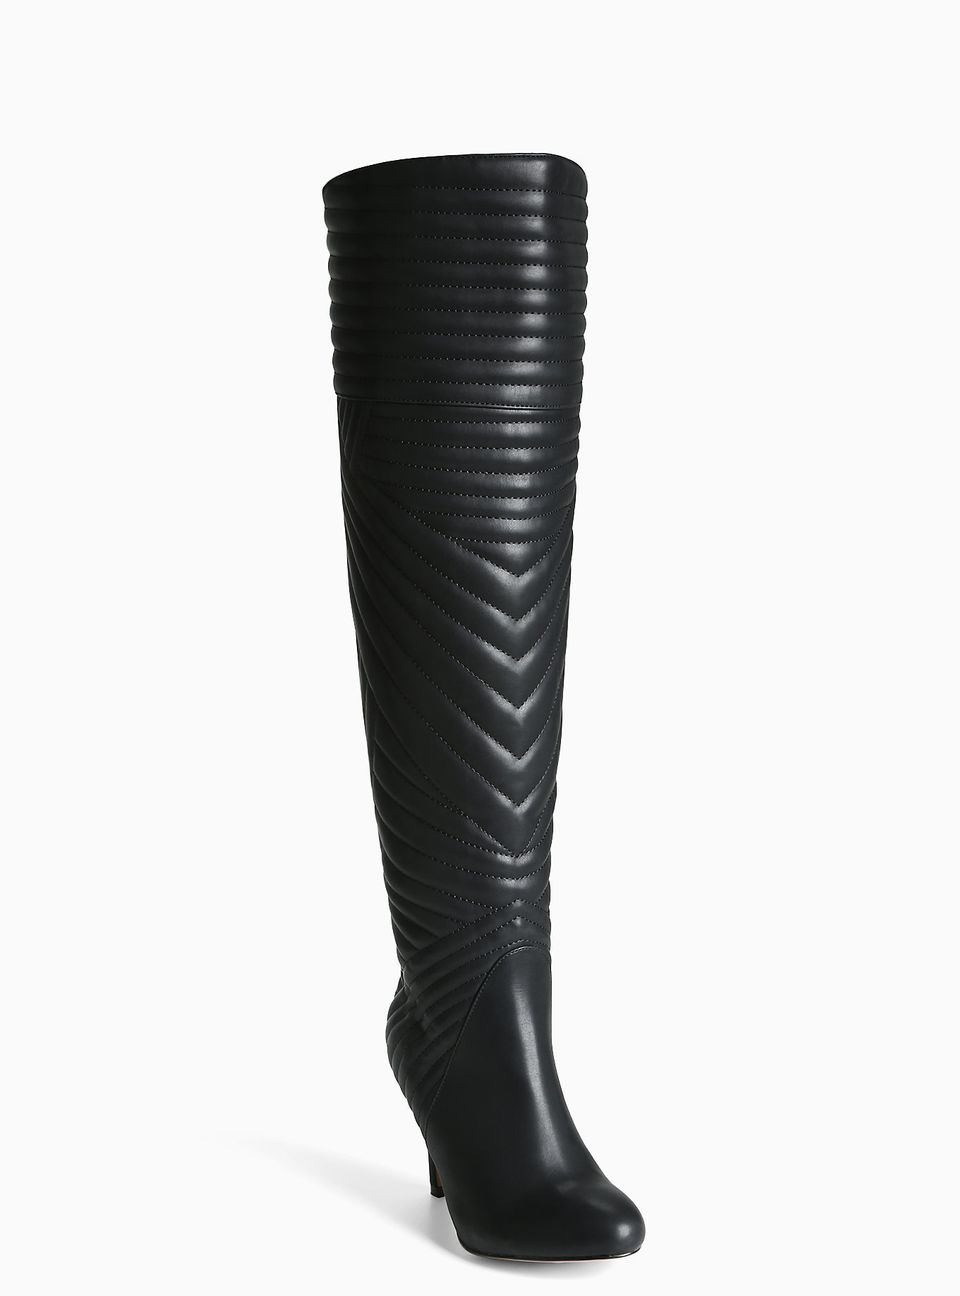 b17977b12a9 Over-The-Knee Boots That'll Actually Fit Women With Big Calves ...